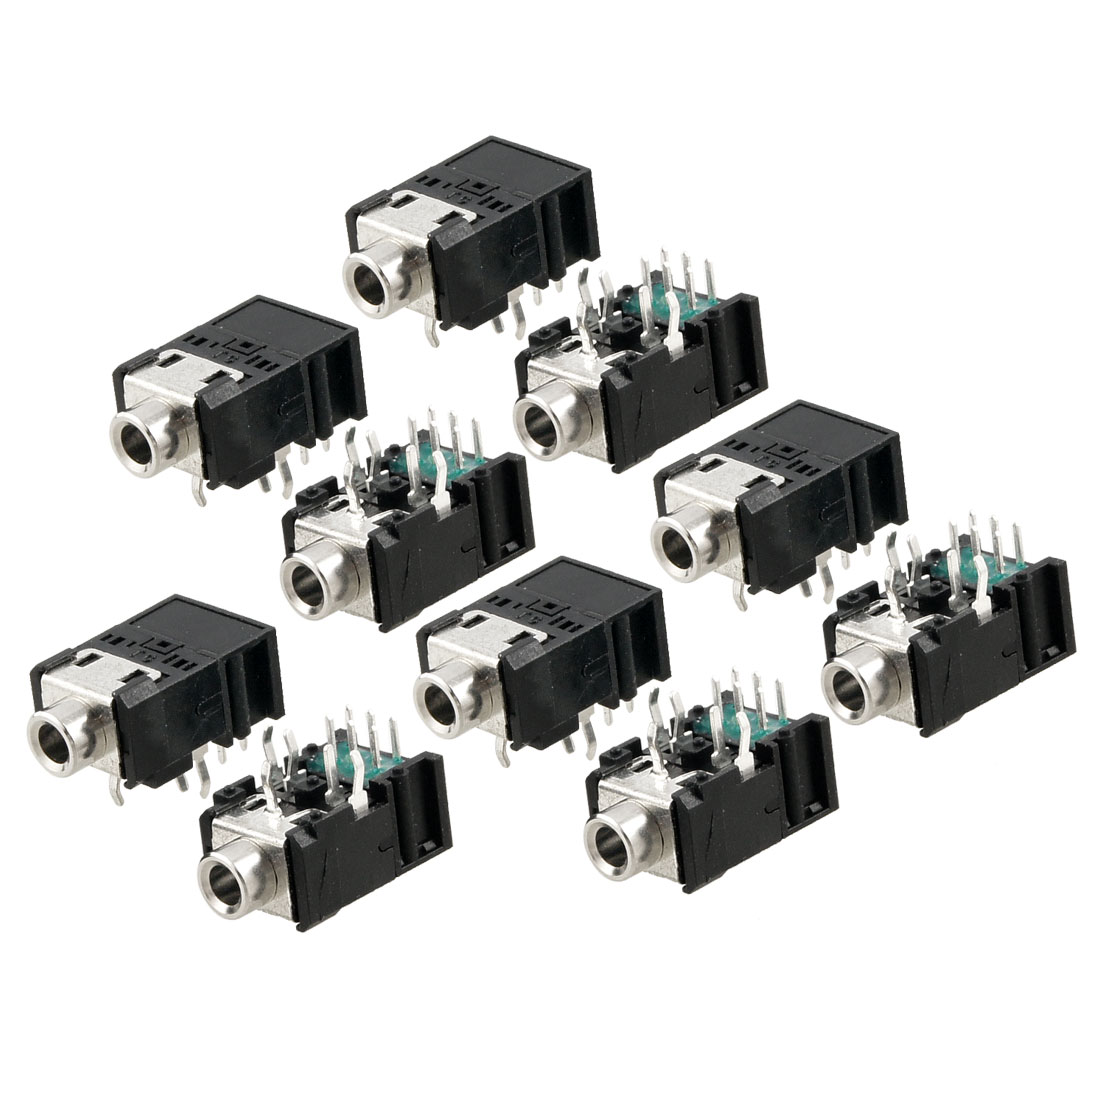 10 Pcs DIP PCB Mount 11 Pins Female 3.5mm Stereo Audio Jack Socket